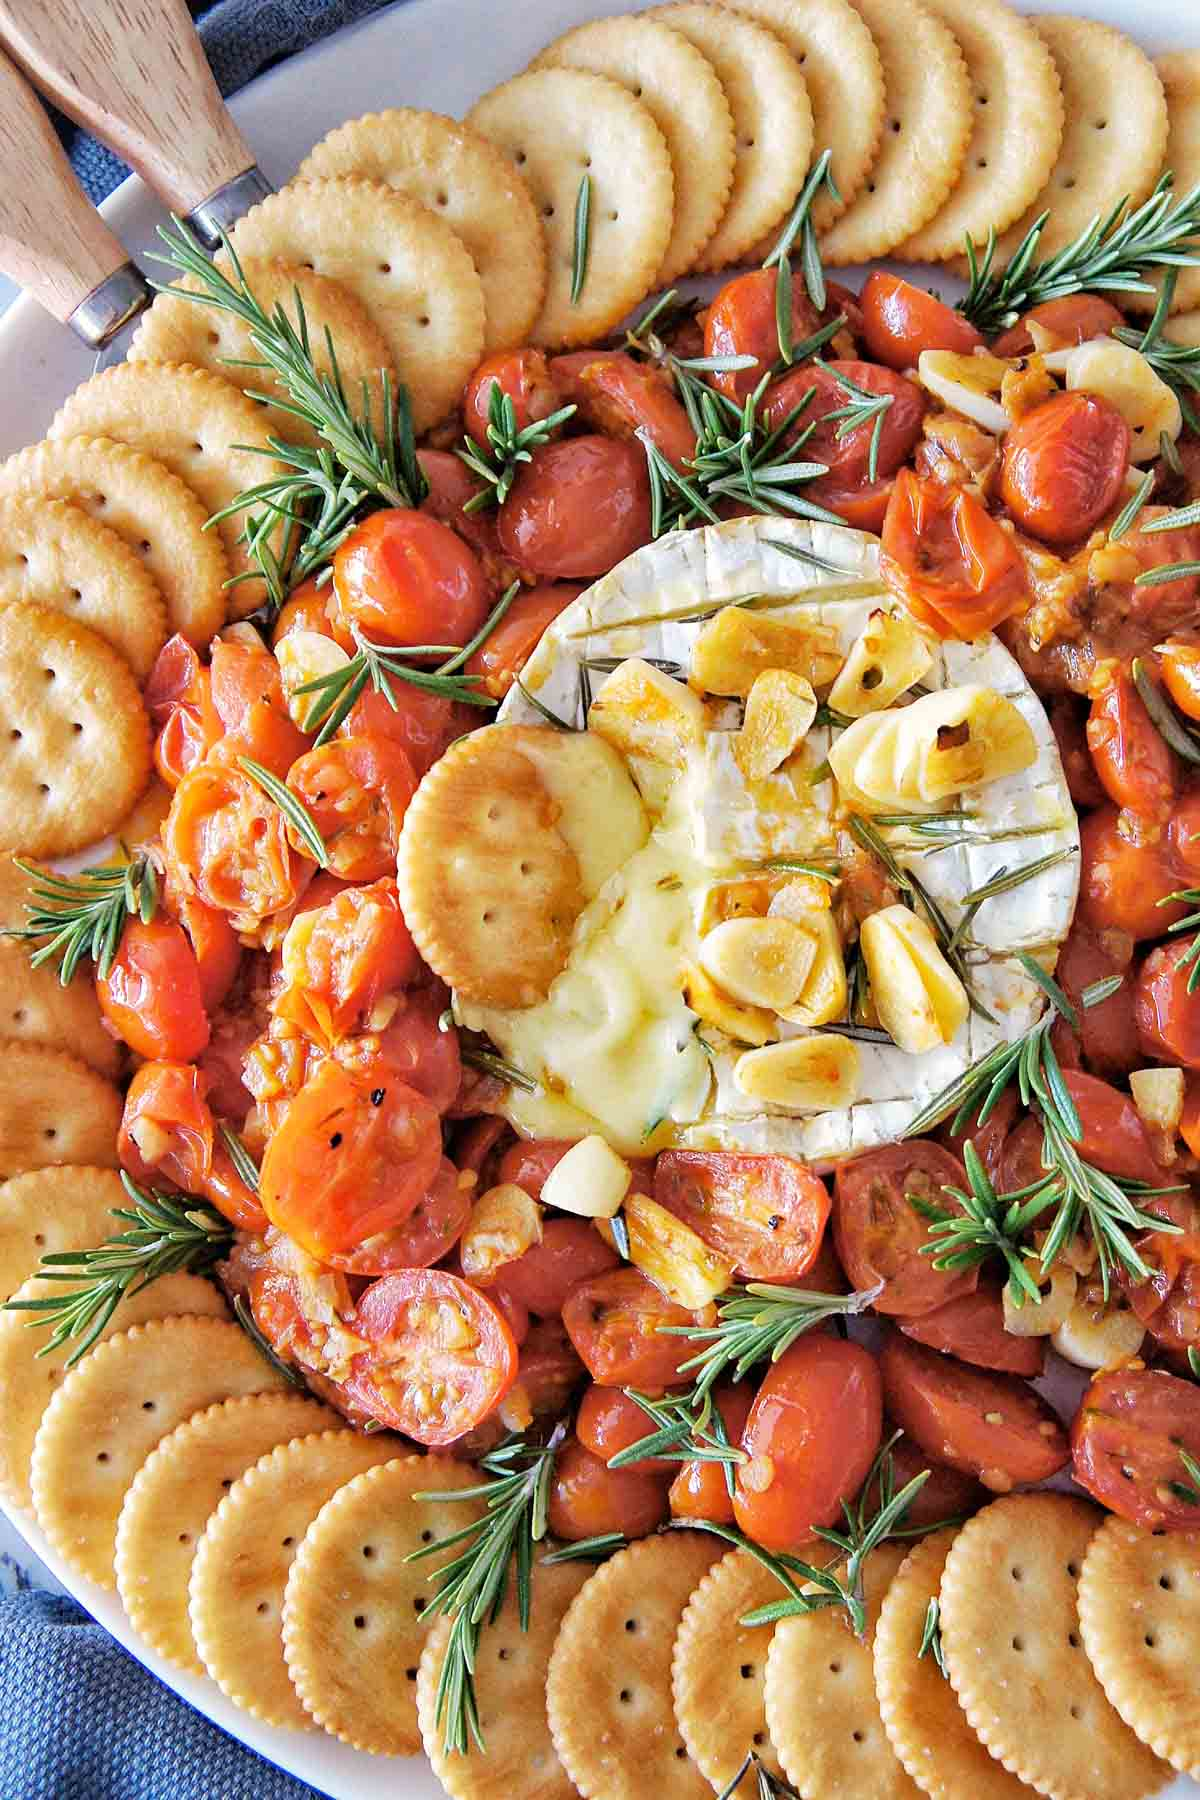 Baked brie with garlic surrounded by roasted tomatoes and crackers